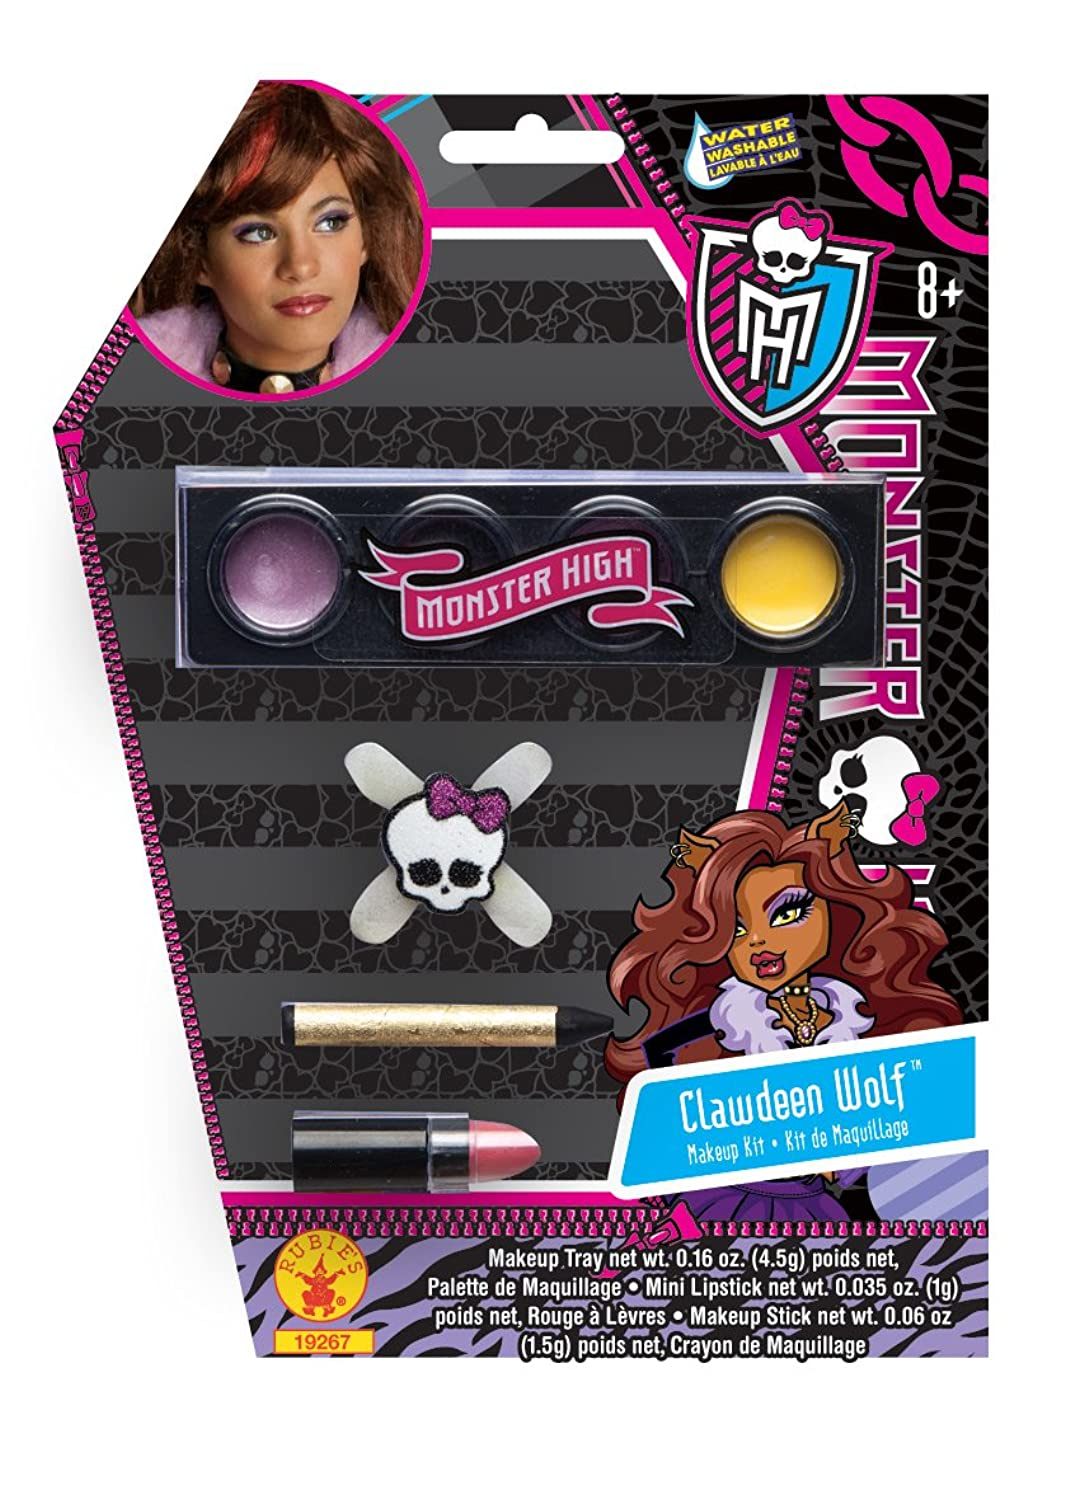 Amazon.com: Monster High Make-Up Kit, Clawdeen Wolf: Toys & Games